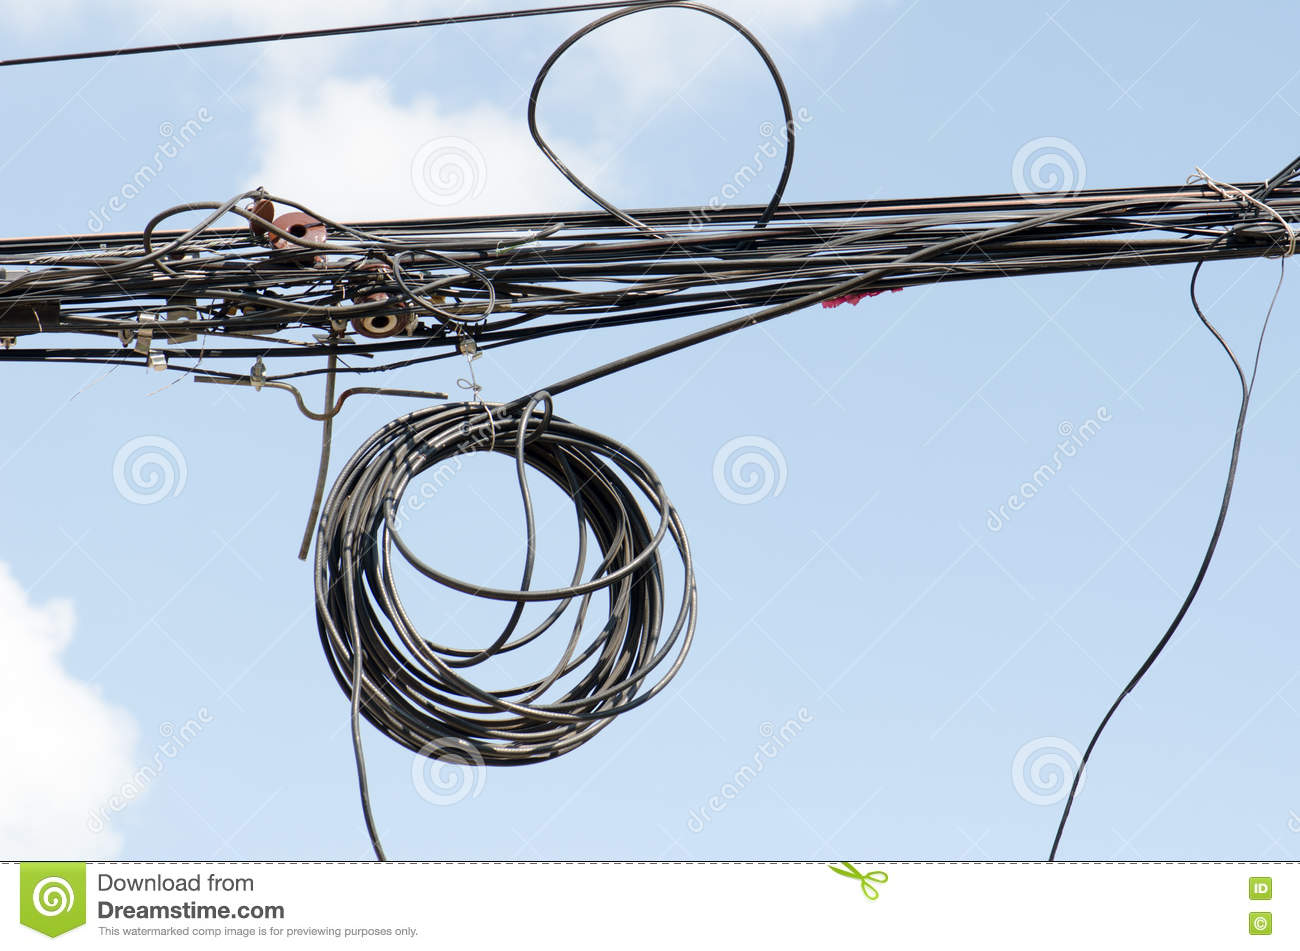 hight resolution of messy electrical cables dial wires tangled in thailand